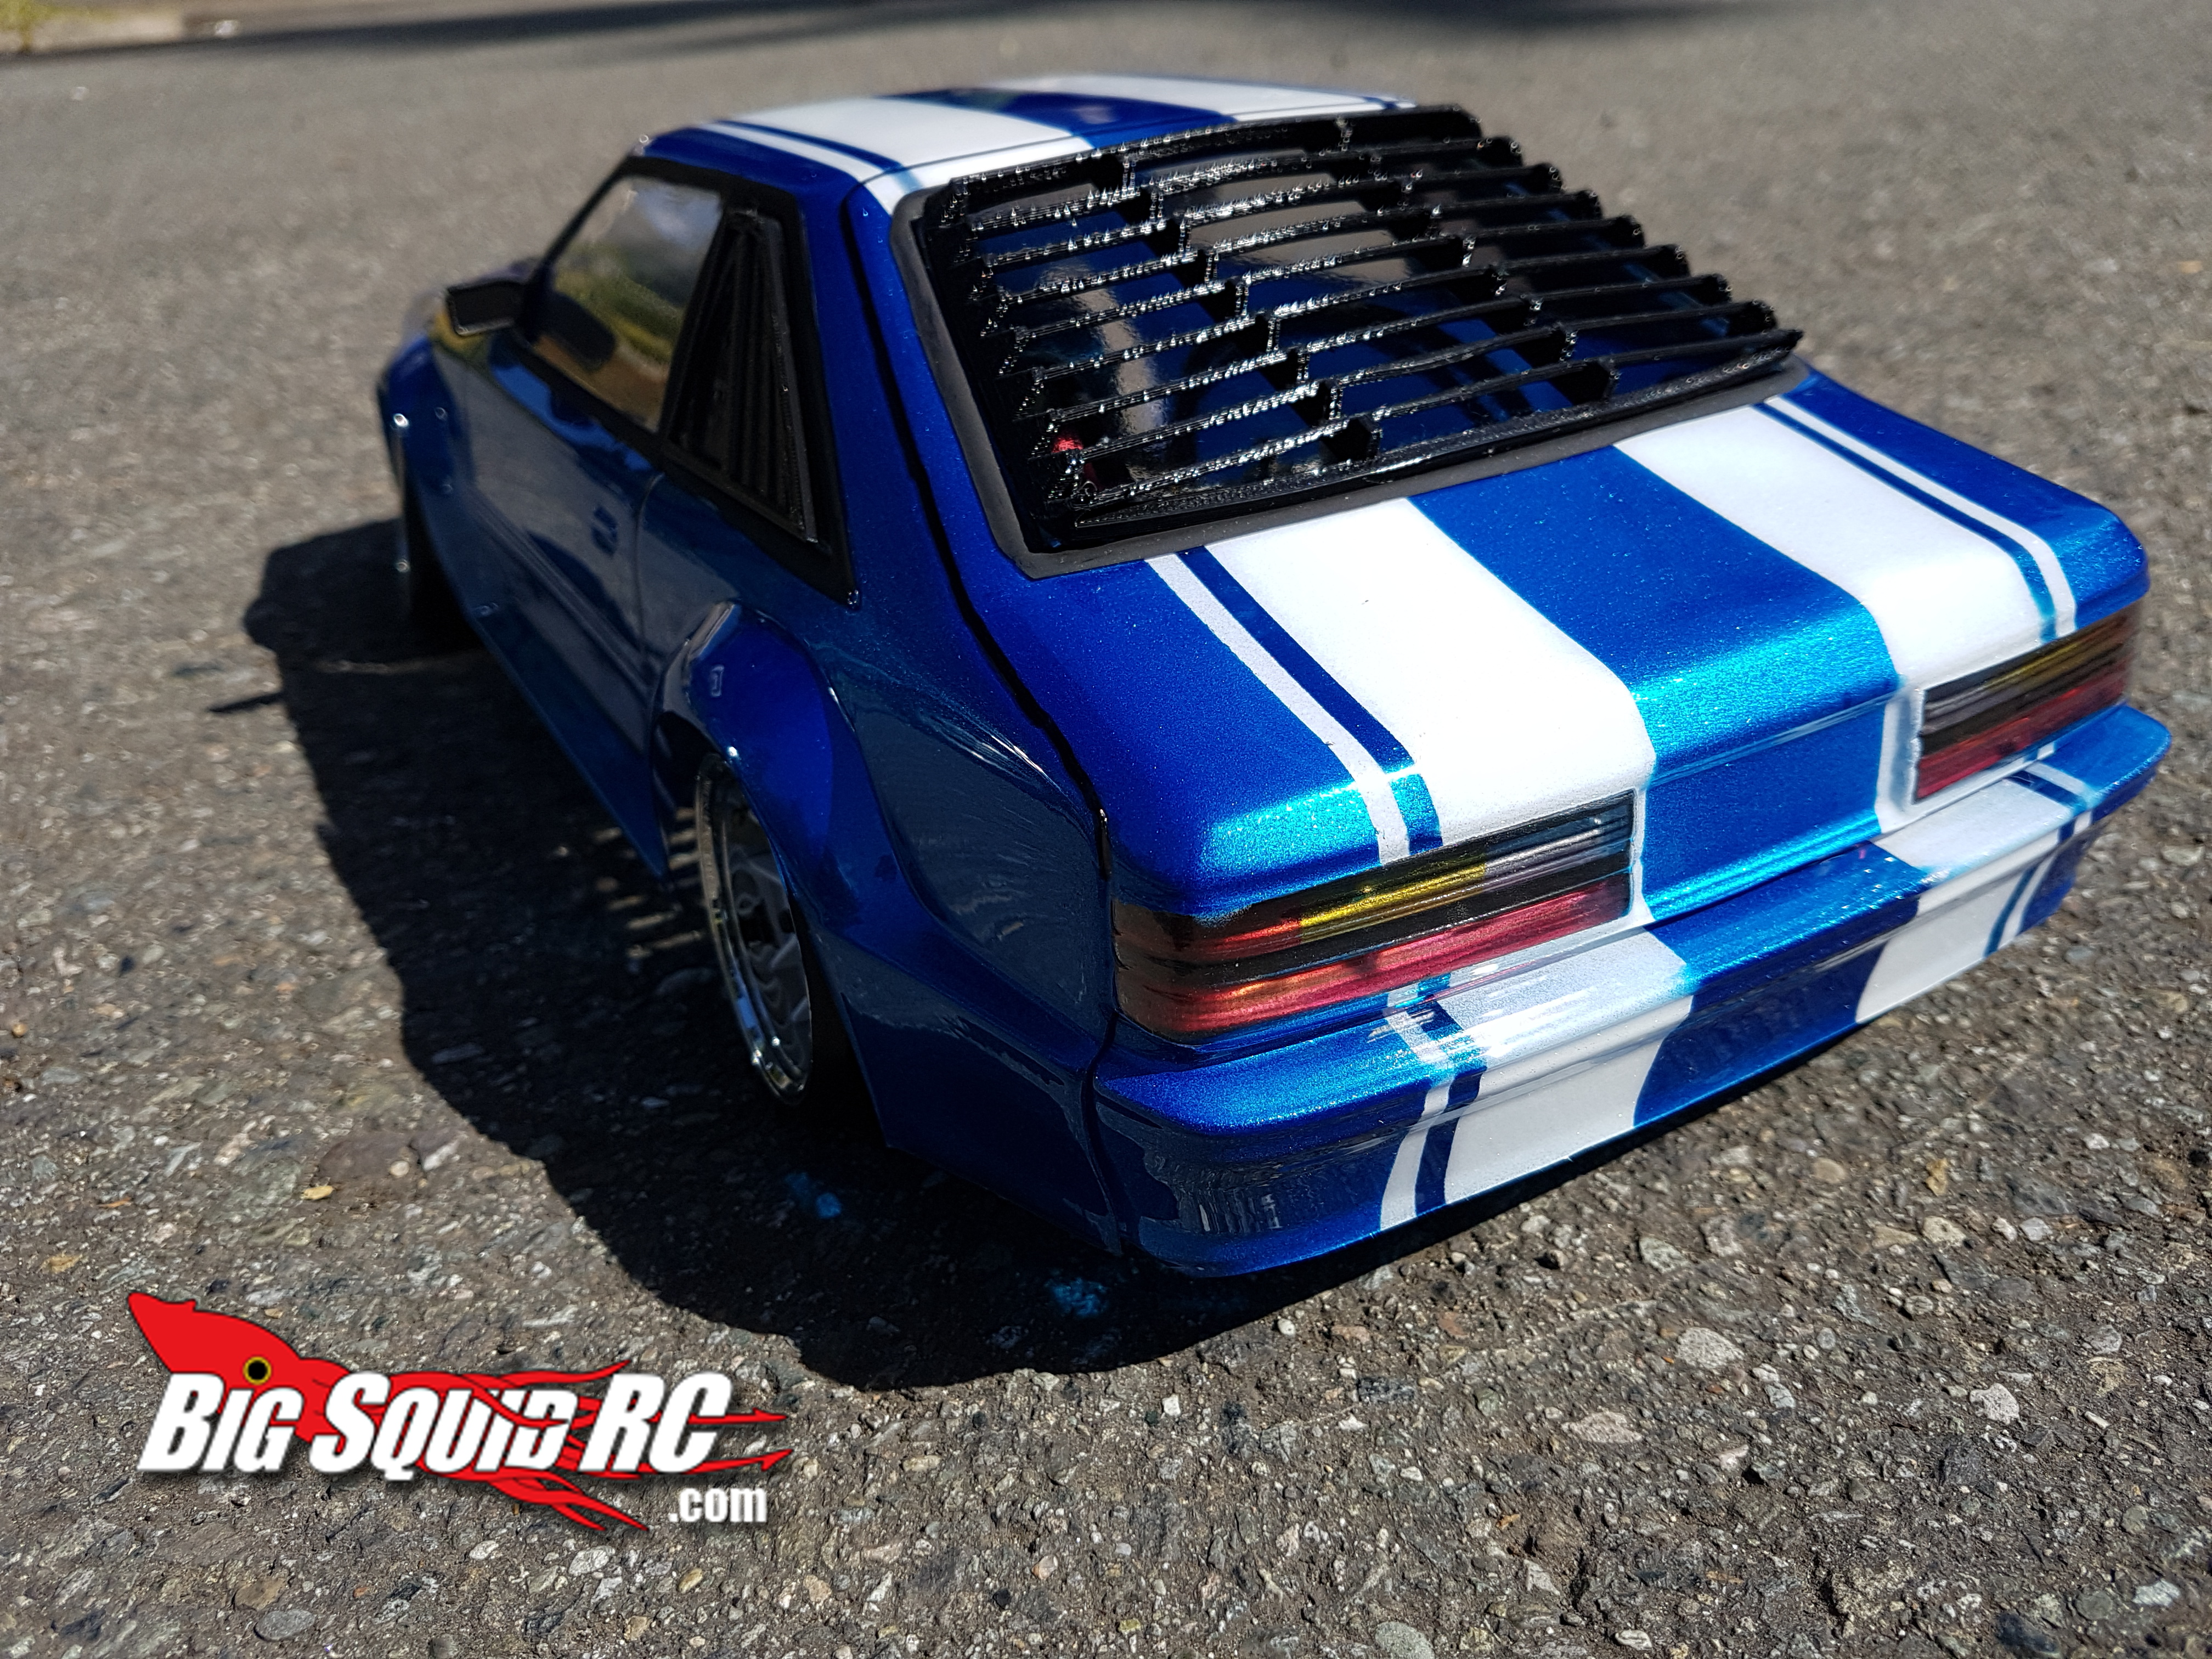 Aplastics H C W B 5 0 And Exclusive R C Body Kit Review